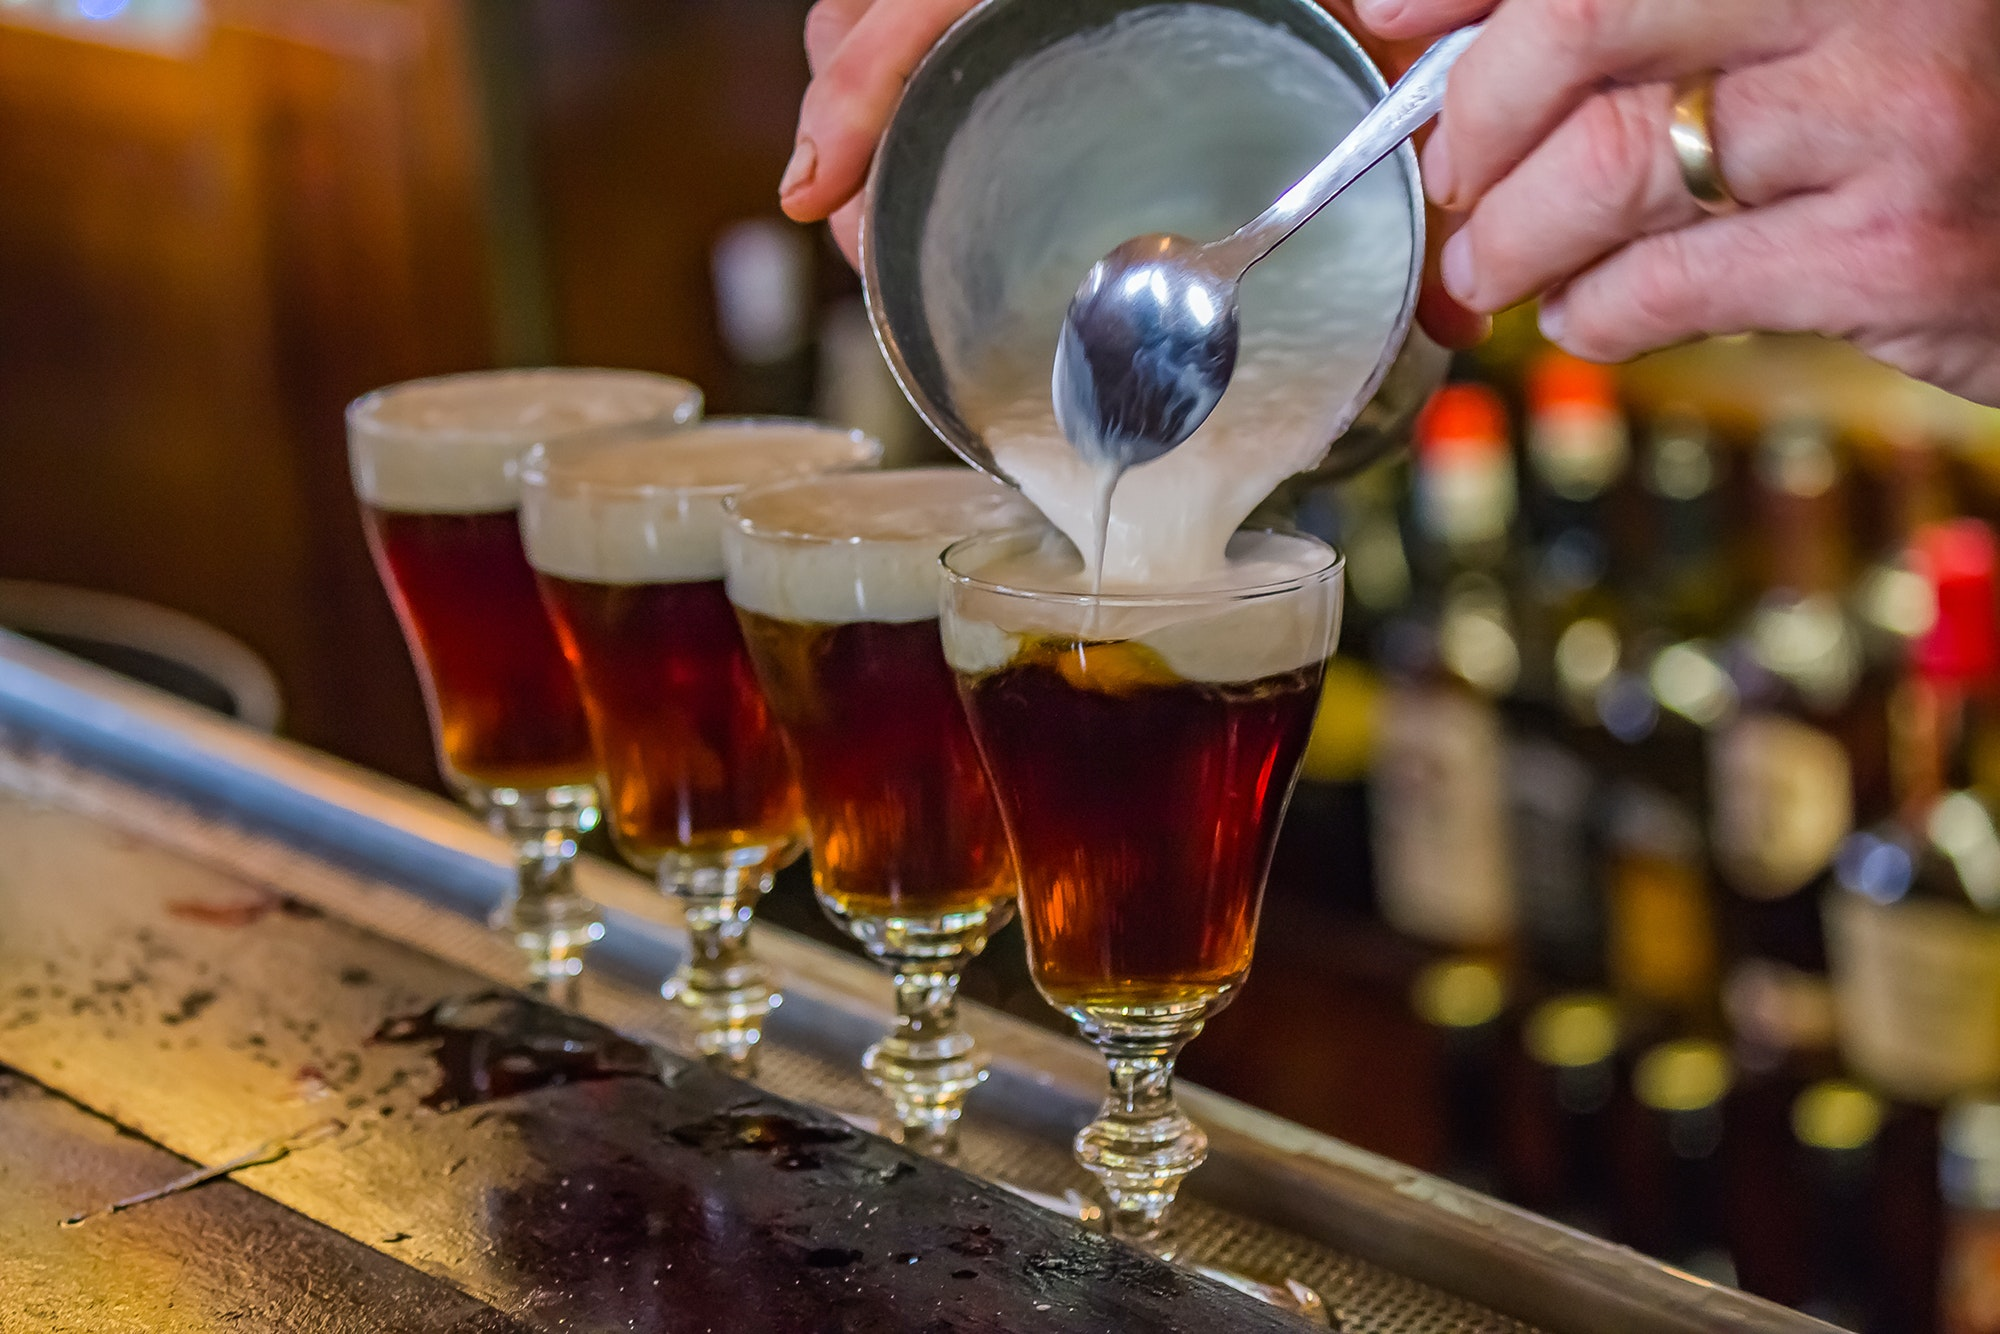 The Buena Vista in San Francisco is one of the many establishments outside of Ireland that claims to have the best Irish coffee.